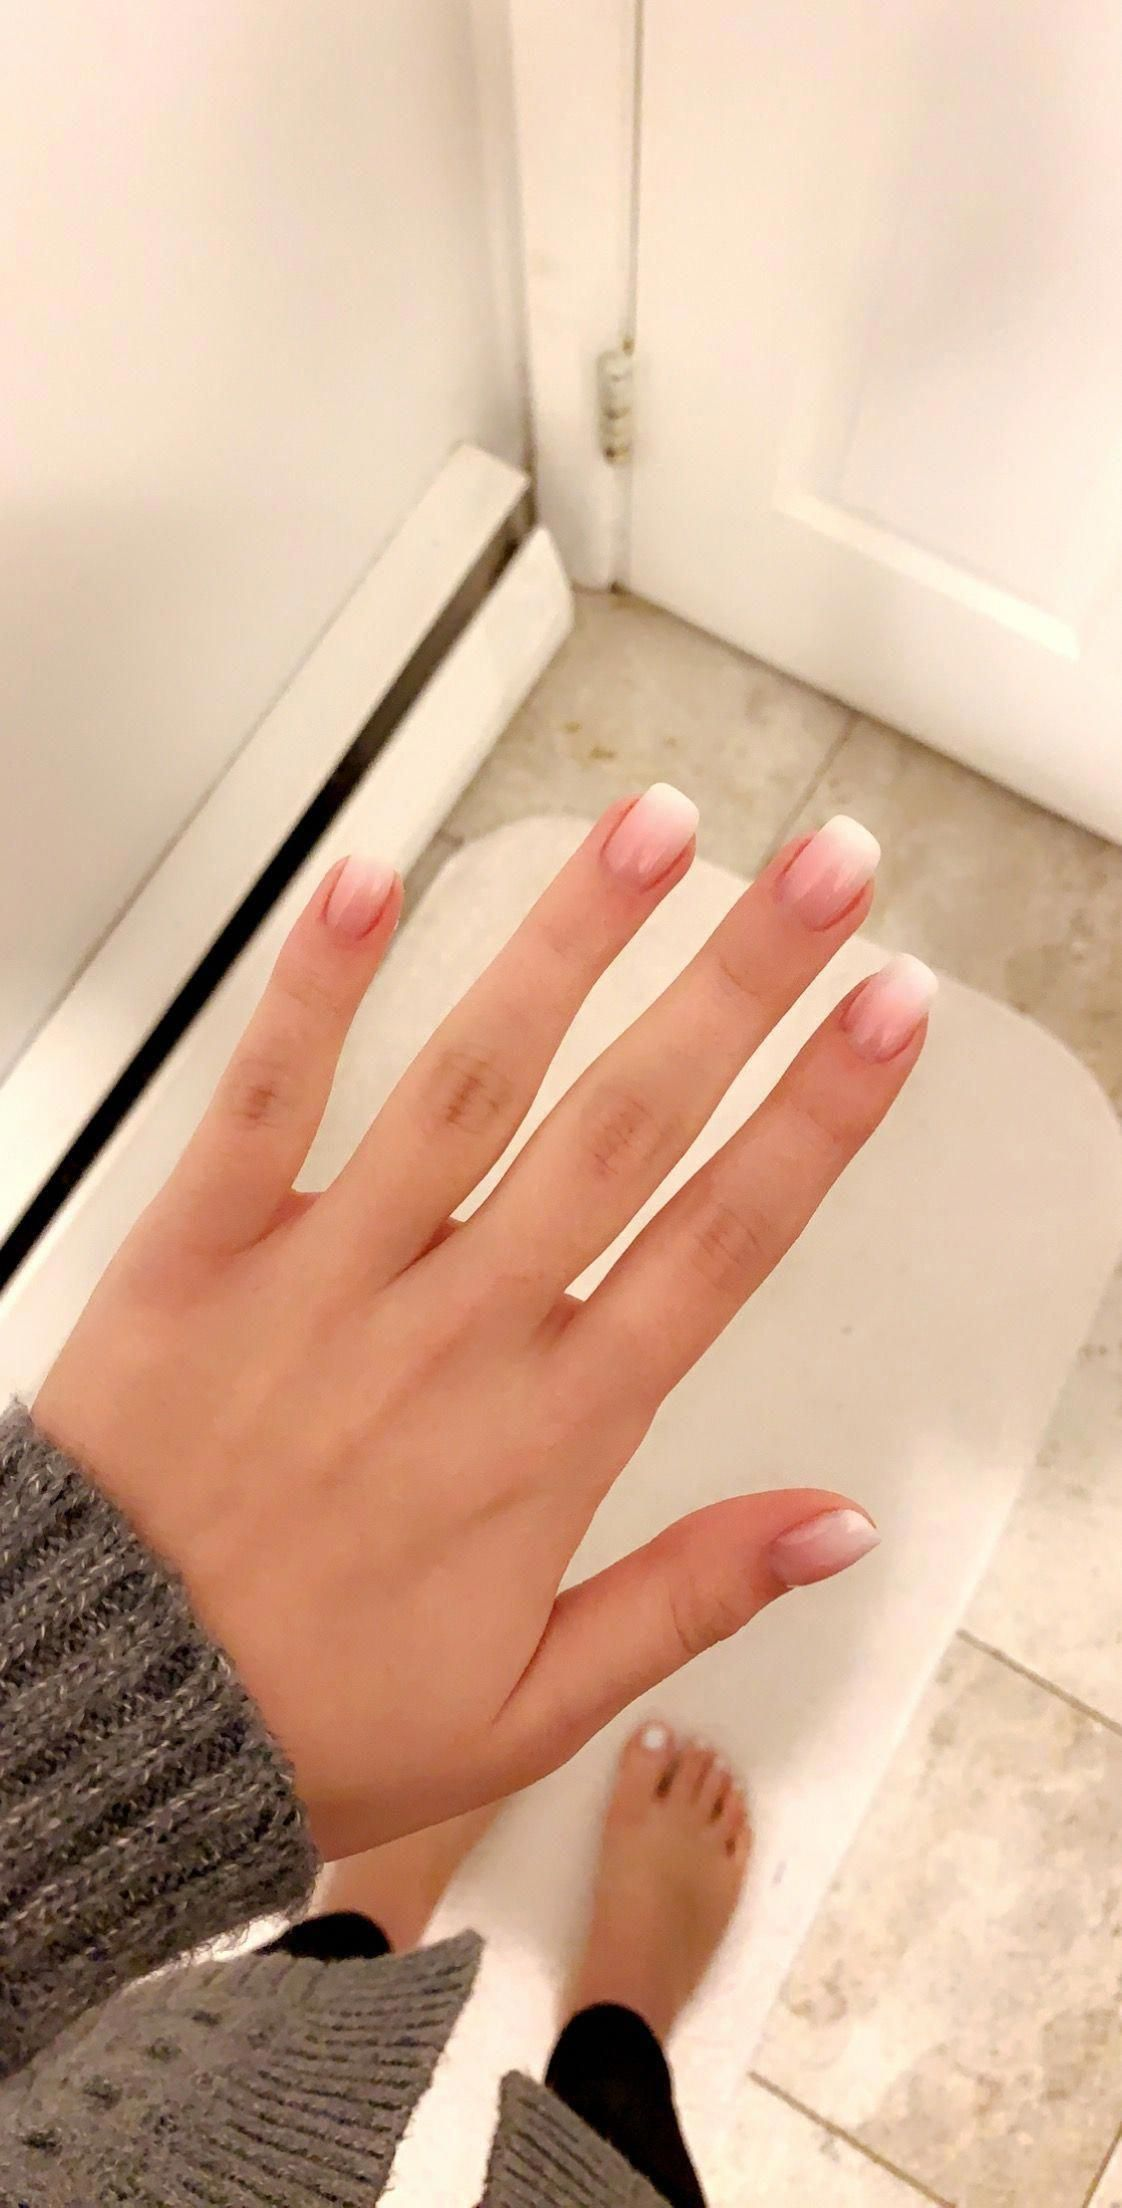 Do You Bite Your Nails Read Our Tips For Having Beautiful Nails In 2020 Nehty Lak Ruka